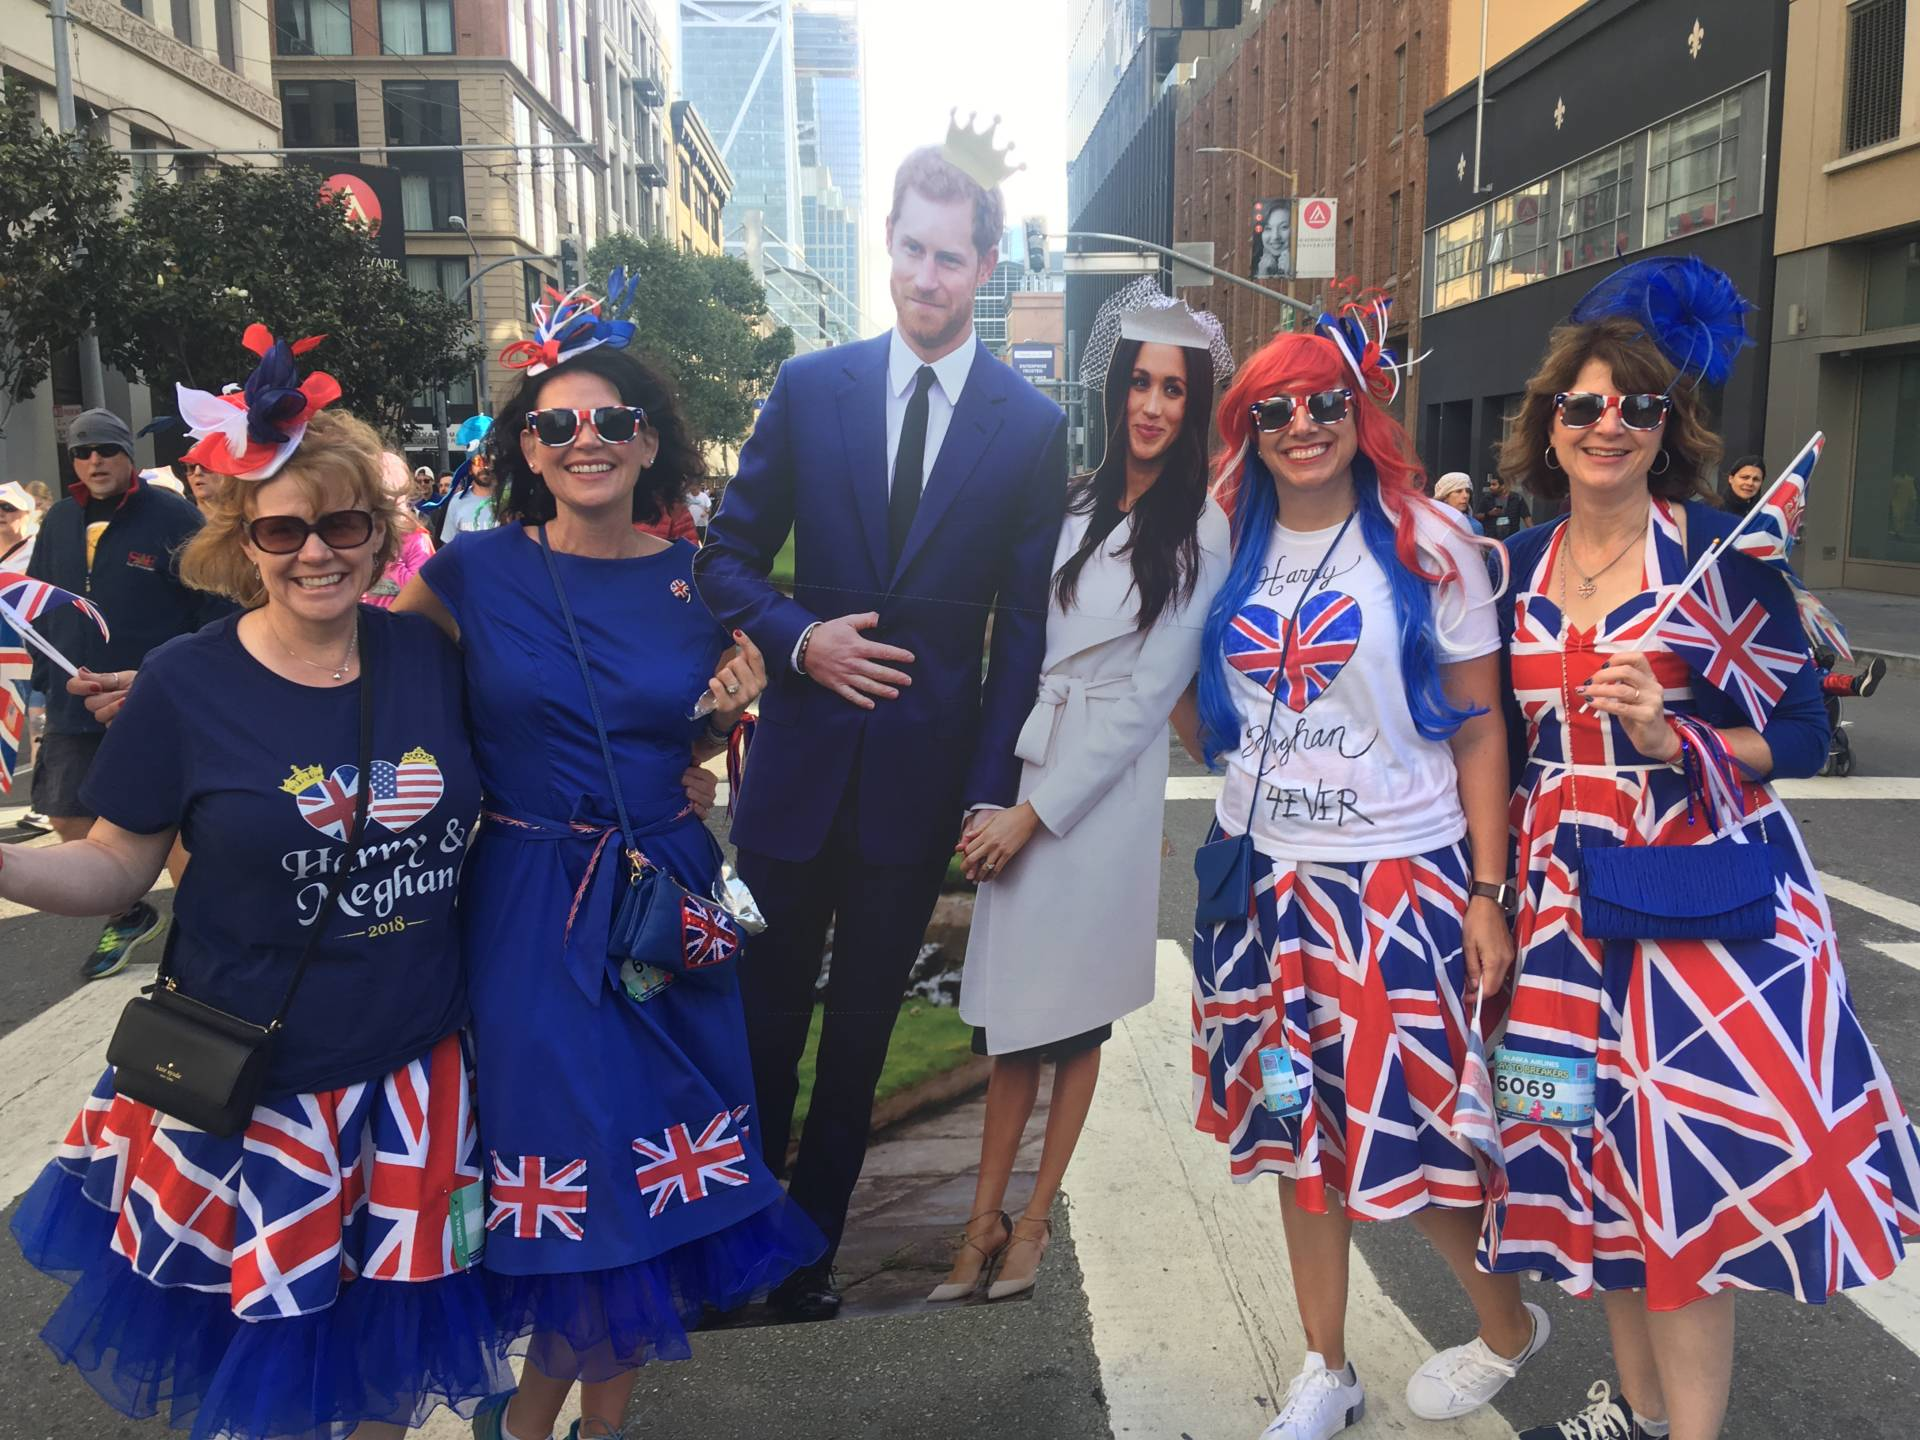 The royal wedding procession makes an appearance at the 107th annual Bay to Breakers in San Francisco. From right to left: Heidi LaBudde, Mollie Beeman, Emily Daley, Bonny Starr. Peter Arcuni/KQED